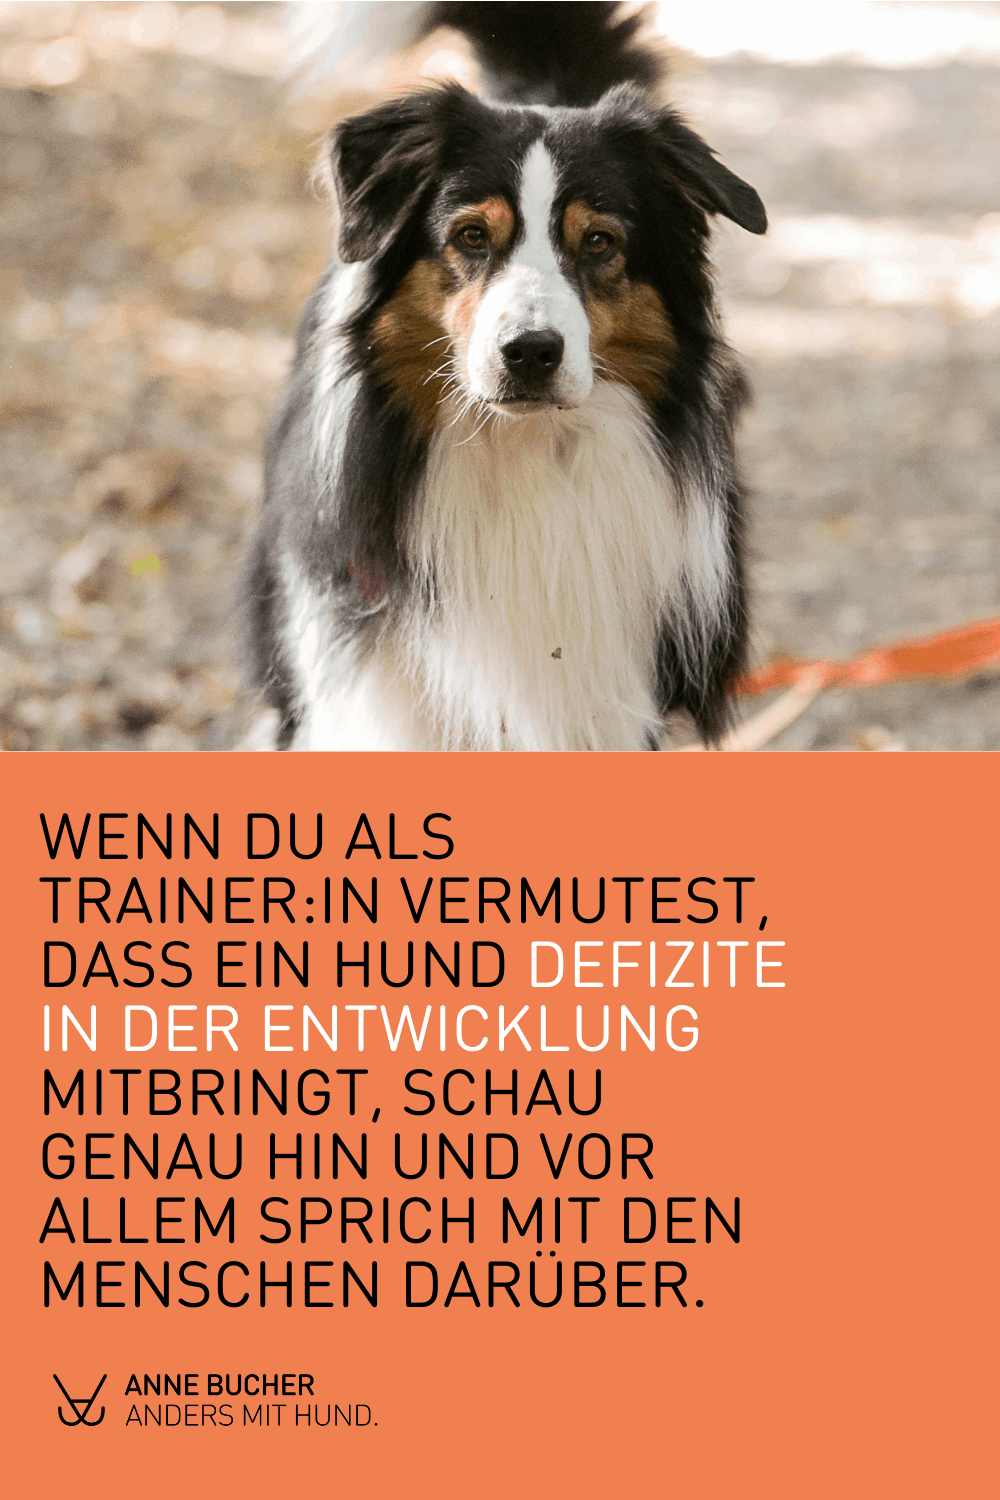 Das Deprivationssyndrom beim Hund